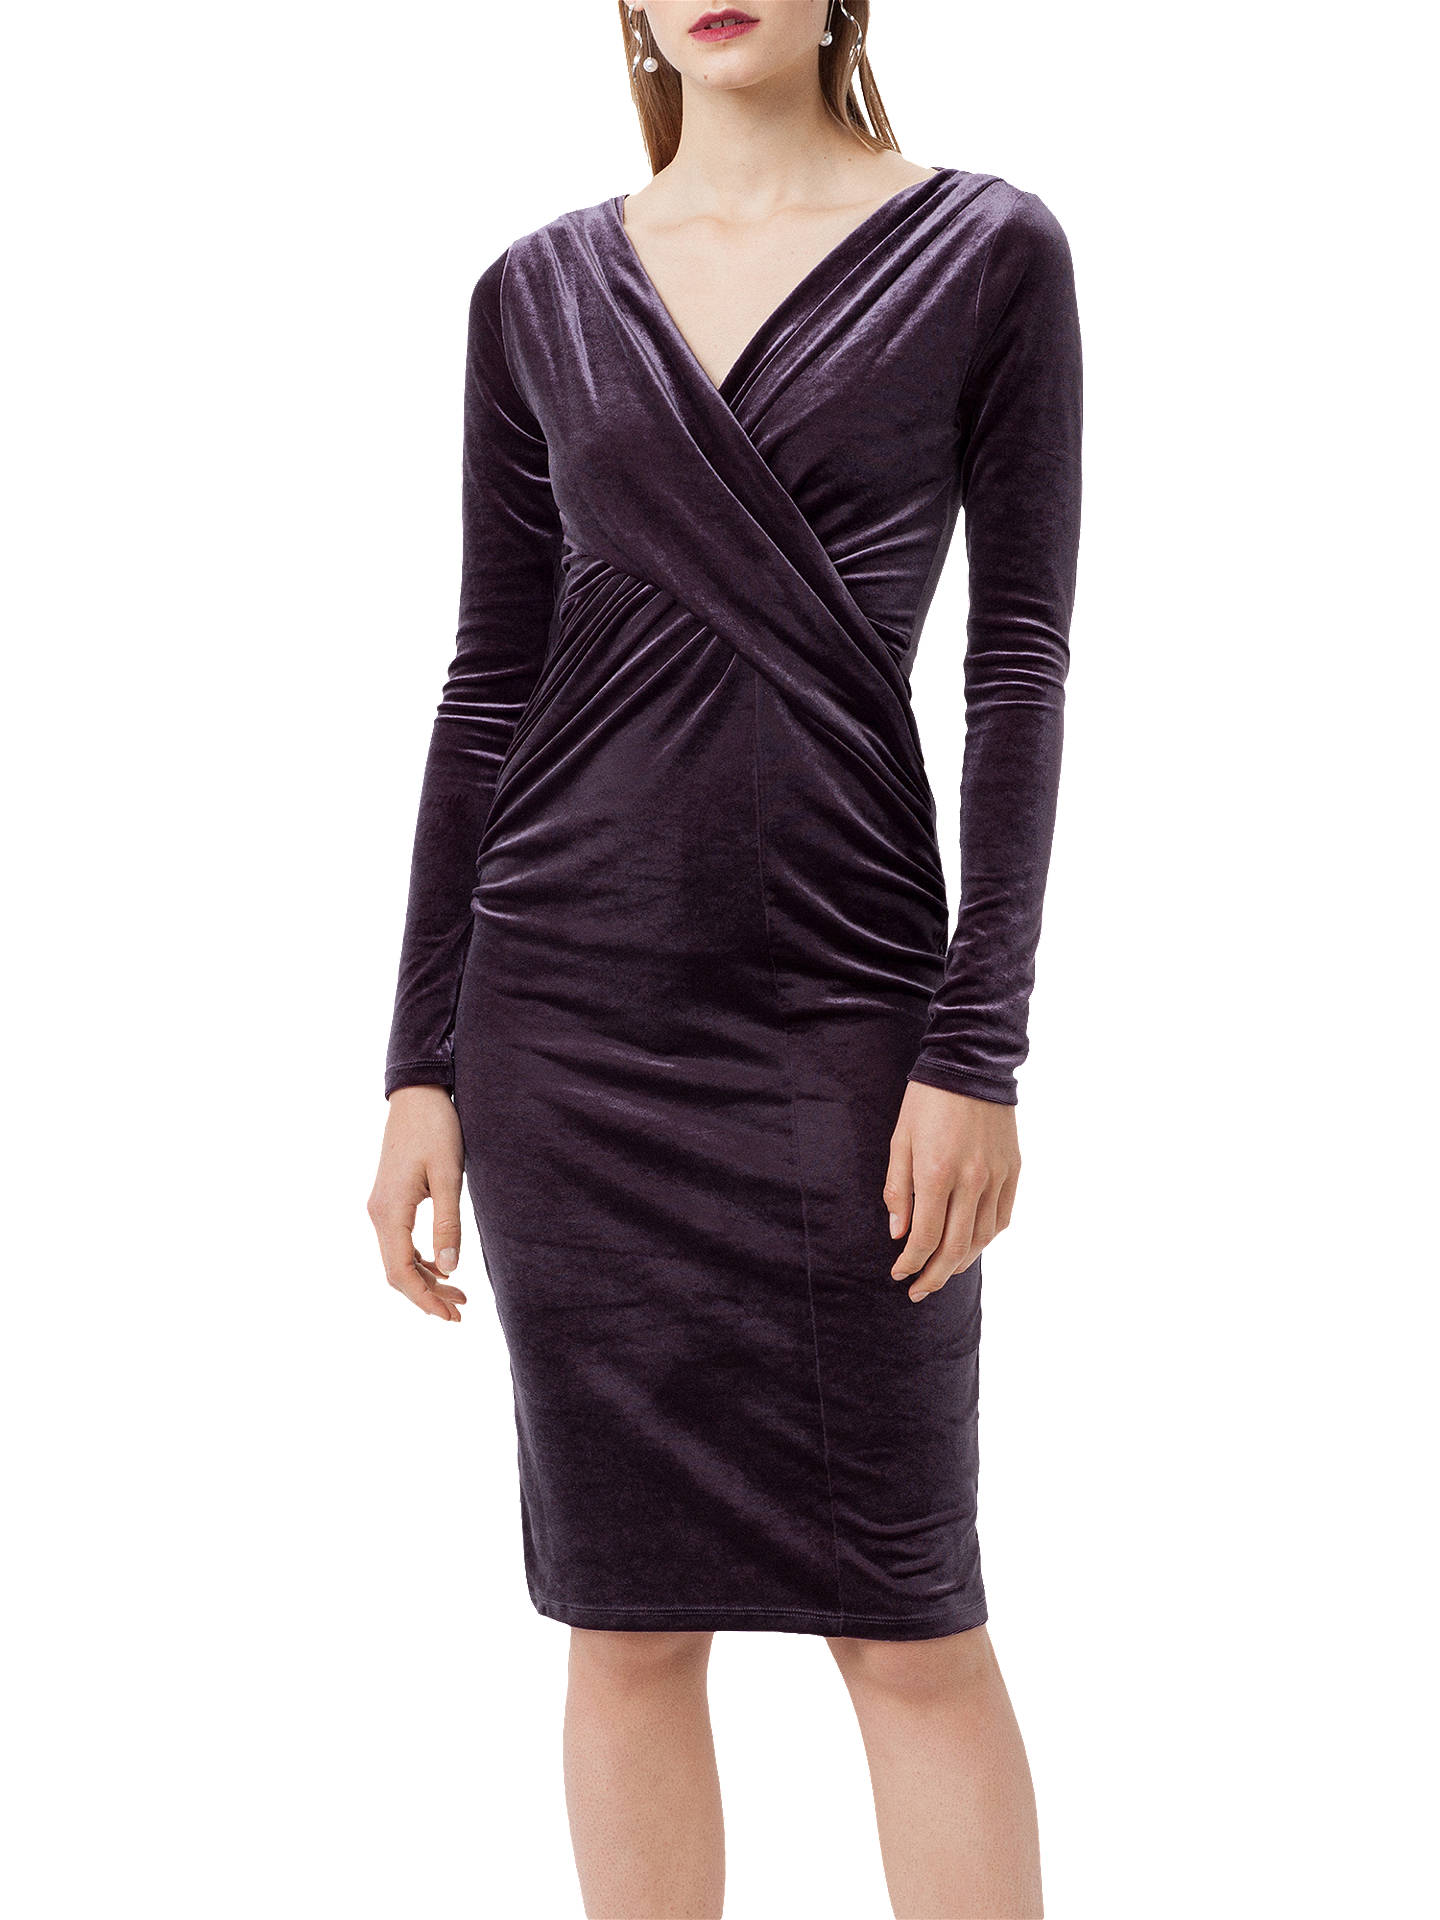 Buy Finery Flockton Crossover Velvet Dress, Charcoal Grey, 8 Online at johnlewis.com